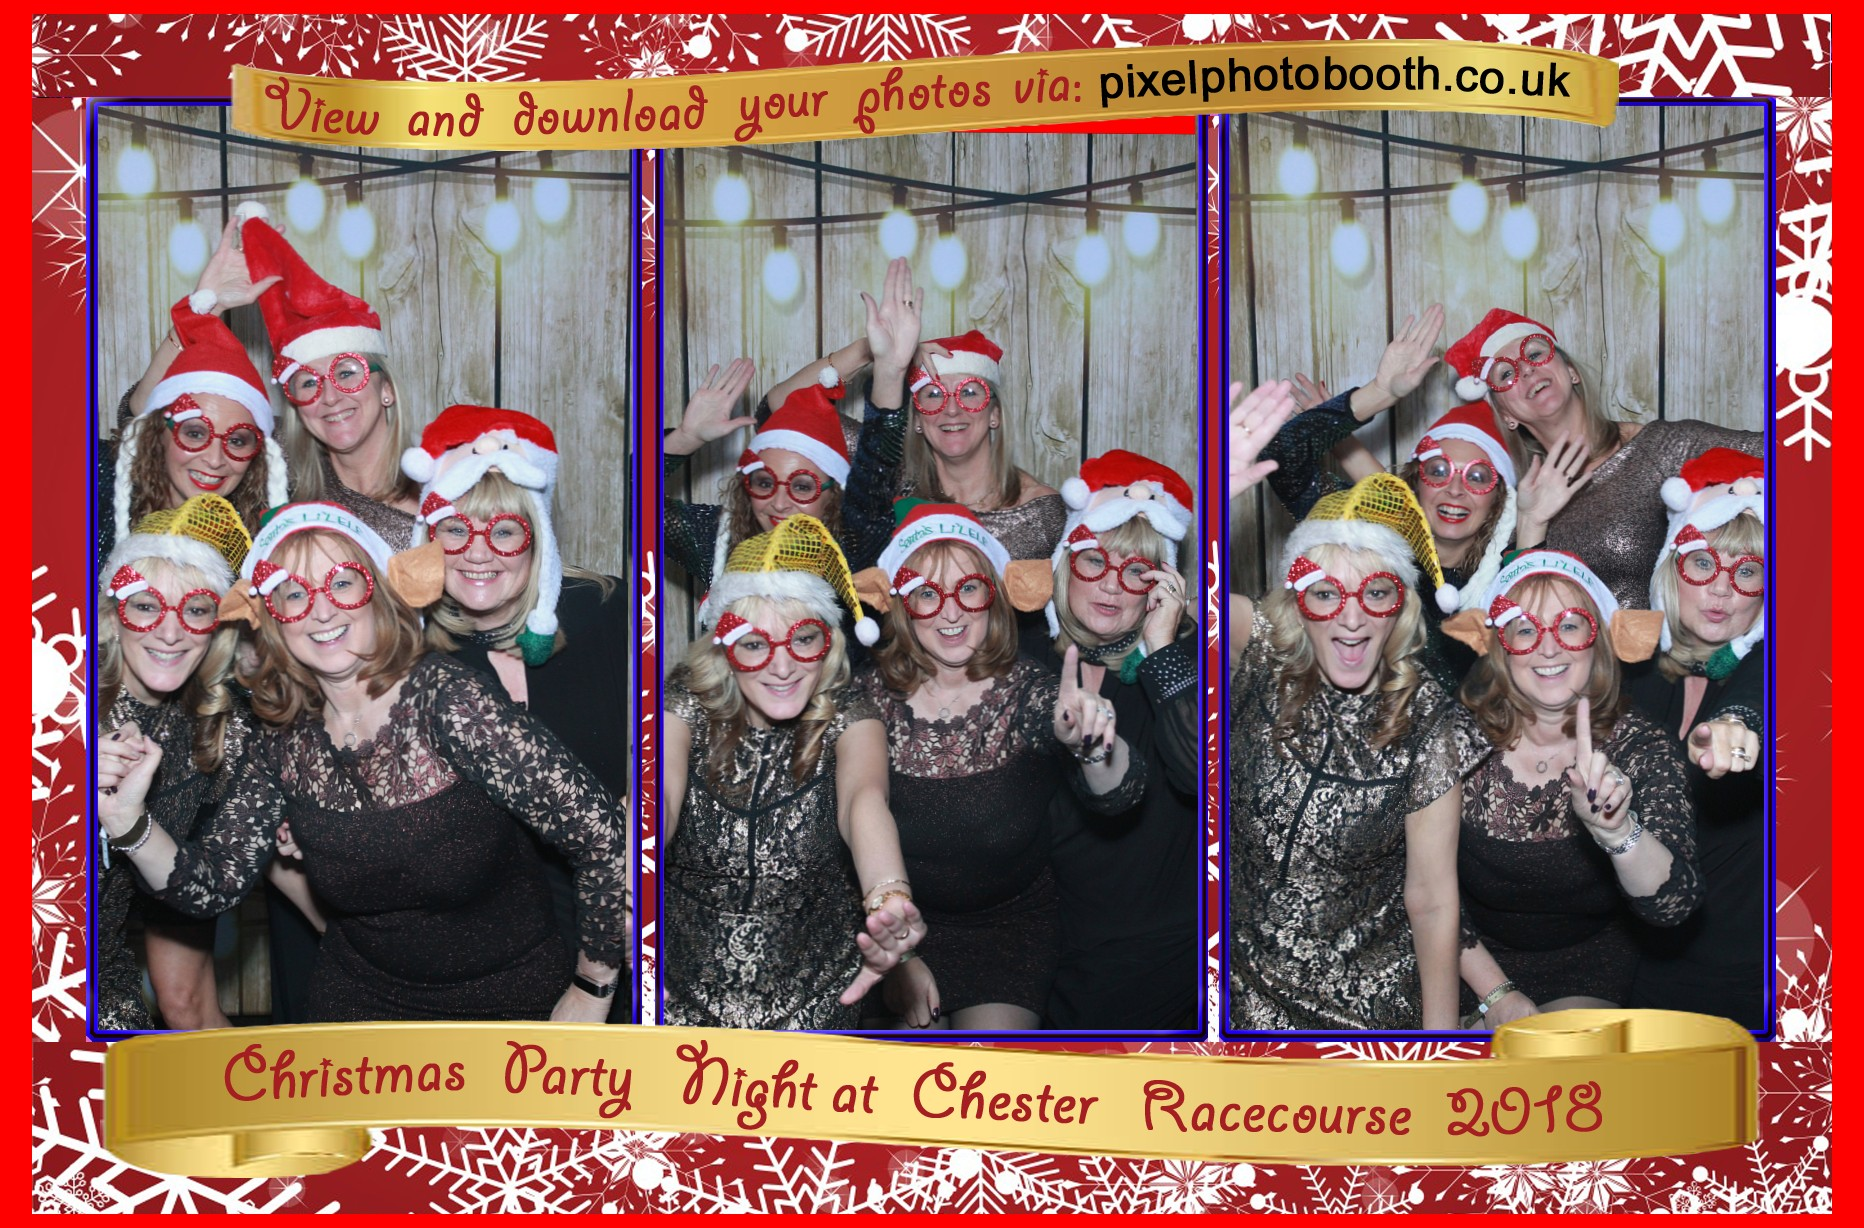 15th Dec 2018: Chester Racecourse Christmas Party Night